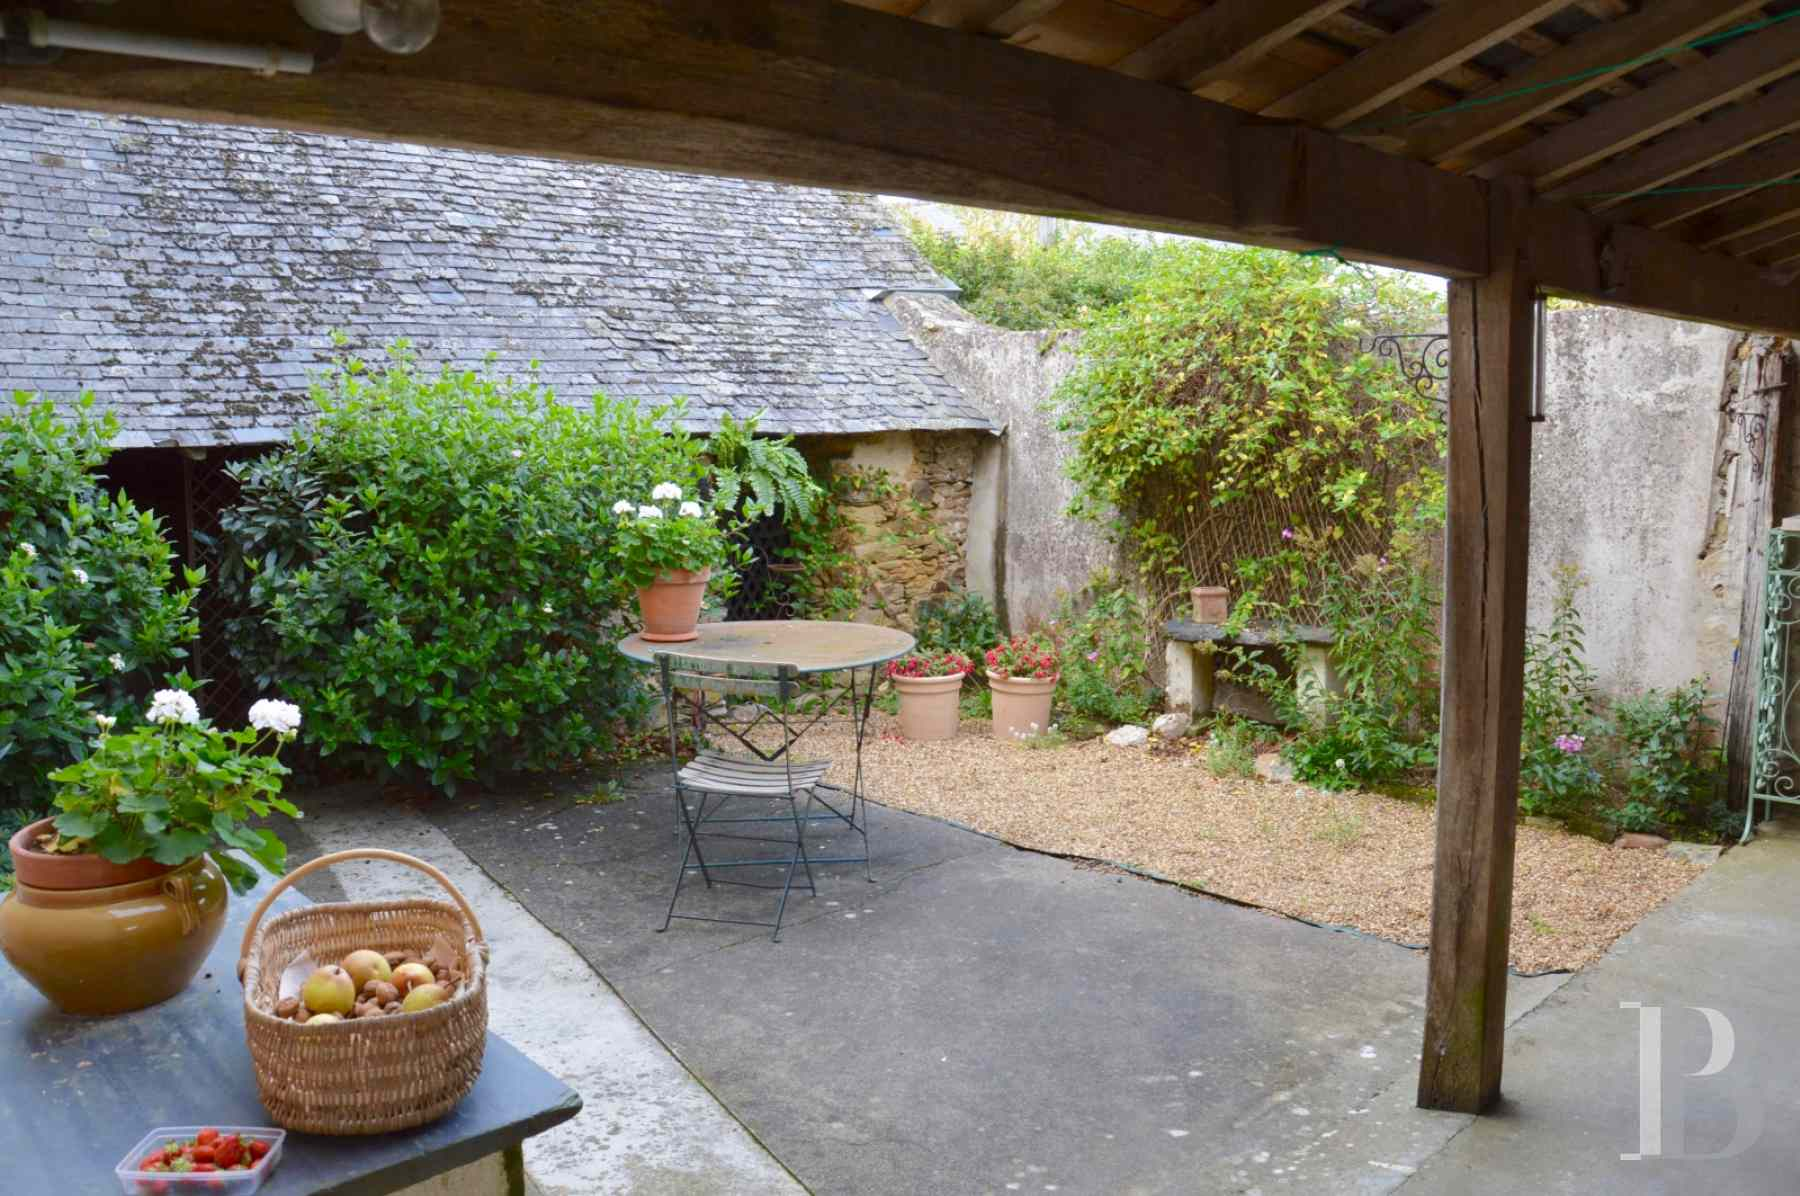 monastery for sale France pays de loire presbytery outbuildings - 10 zoom